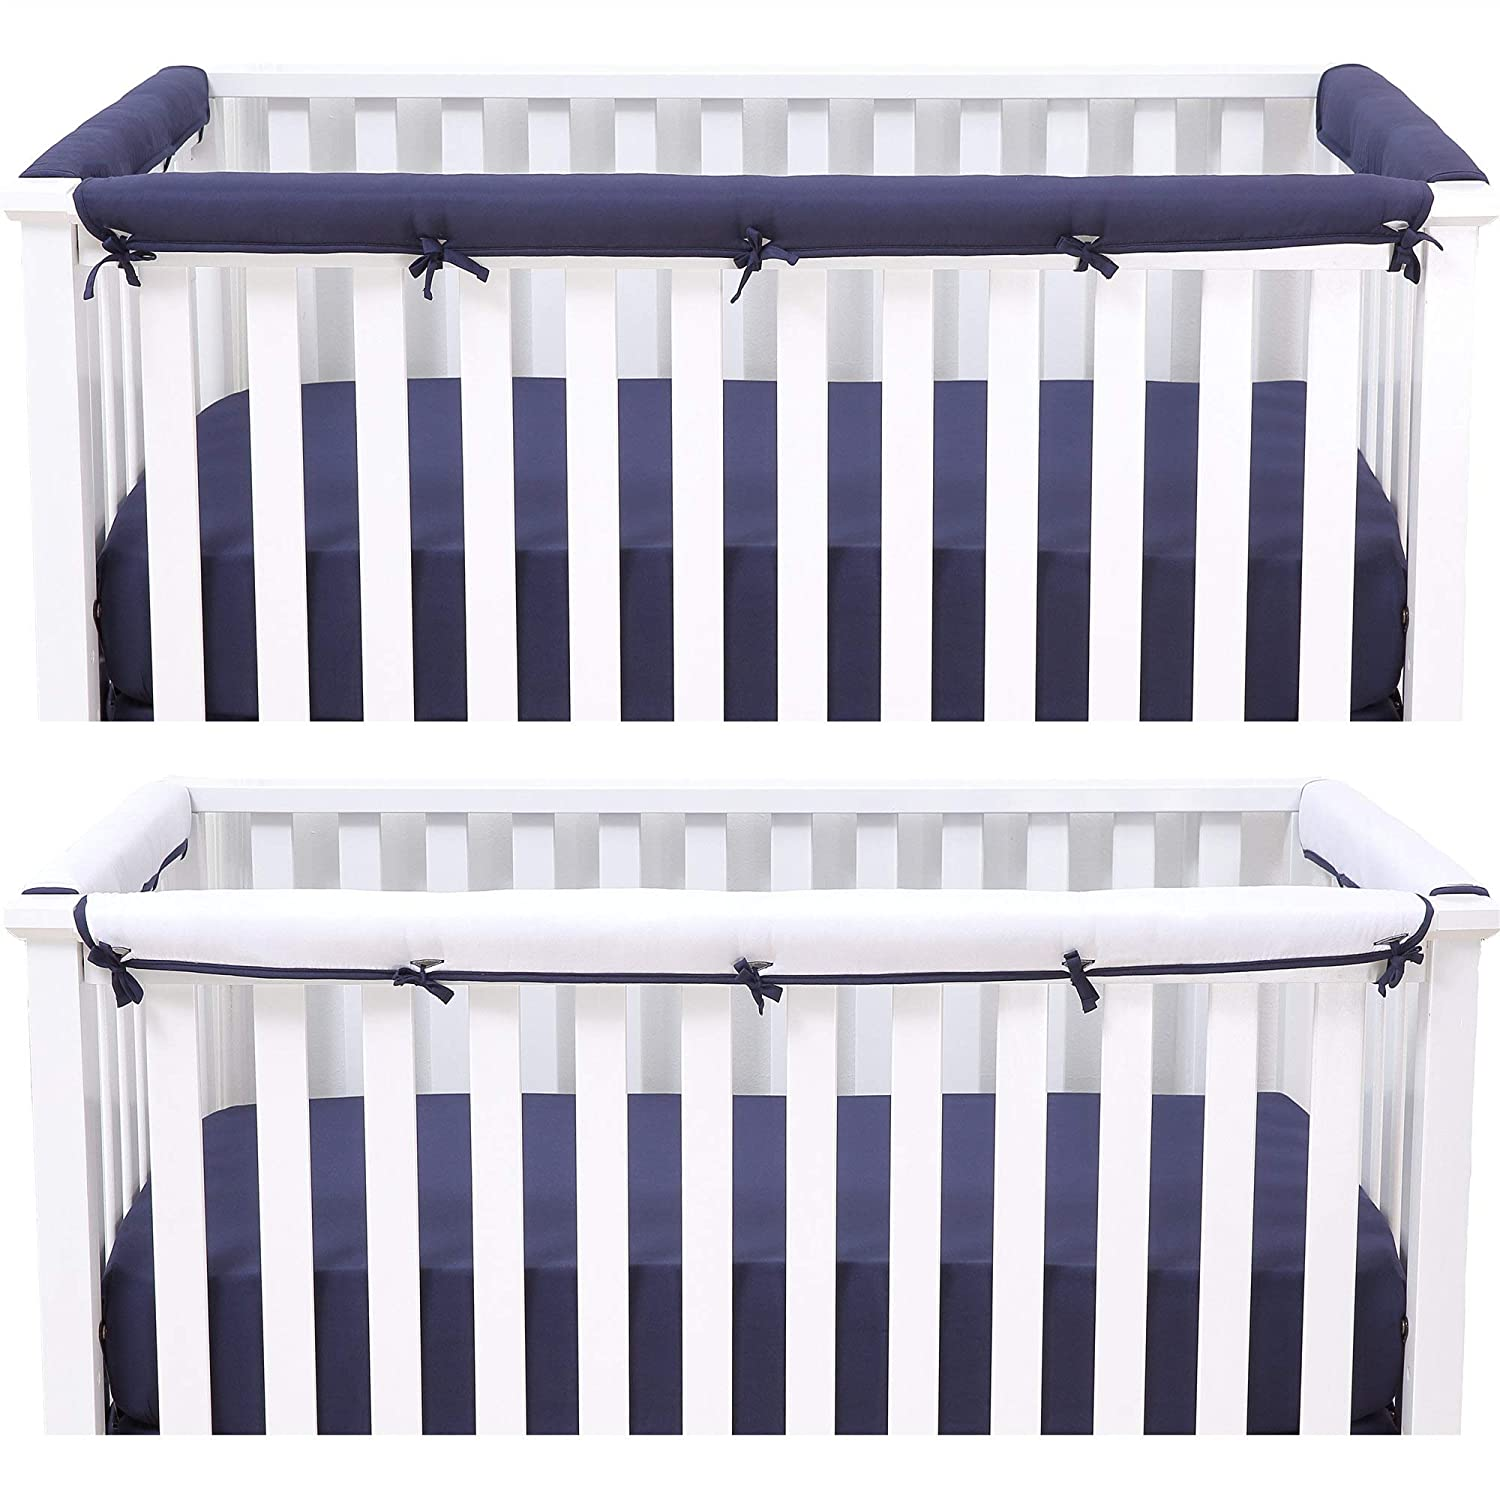 Belsden Baby Safe 3 Pack Crib Rail Cover Set For 1 Long And 2 Side Rails Reversible Breathable Padded Crib Teething Guard And Protector For Boys Measuring Up To 8 Inches Around Navy And White Color Baby Amazon Com